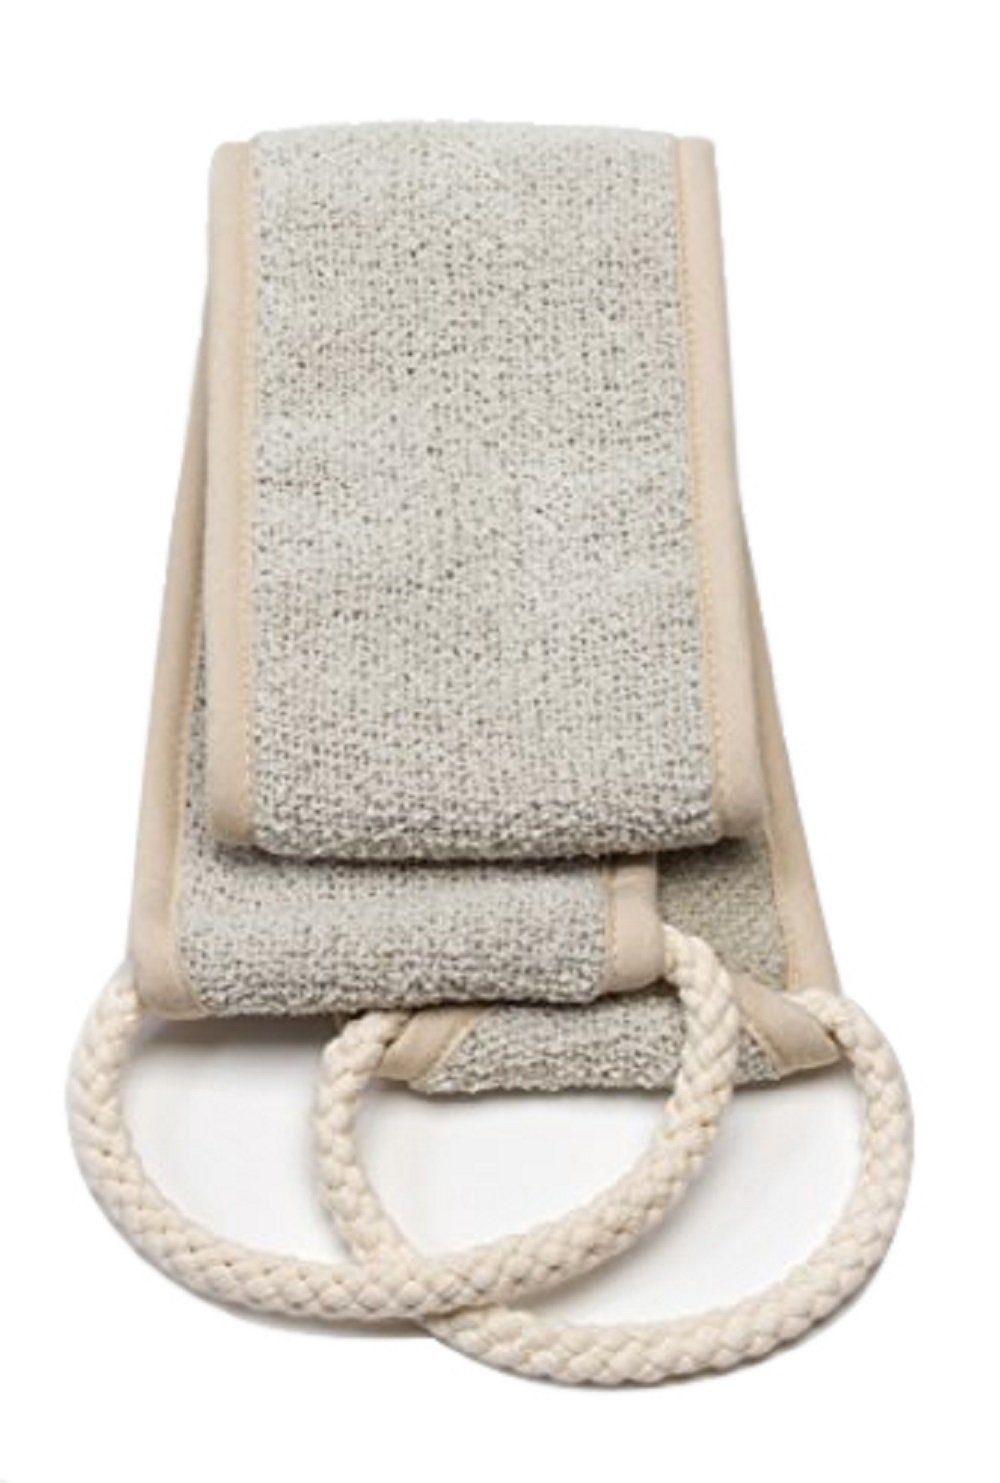 Aquis Exfoliating and Invigorating Back Scrubber | Best Shower Back Scrubbers